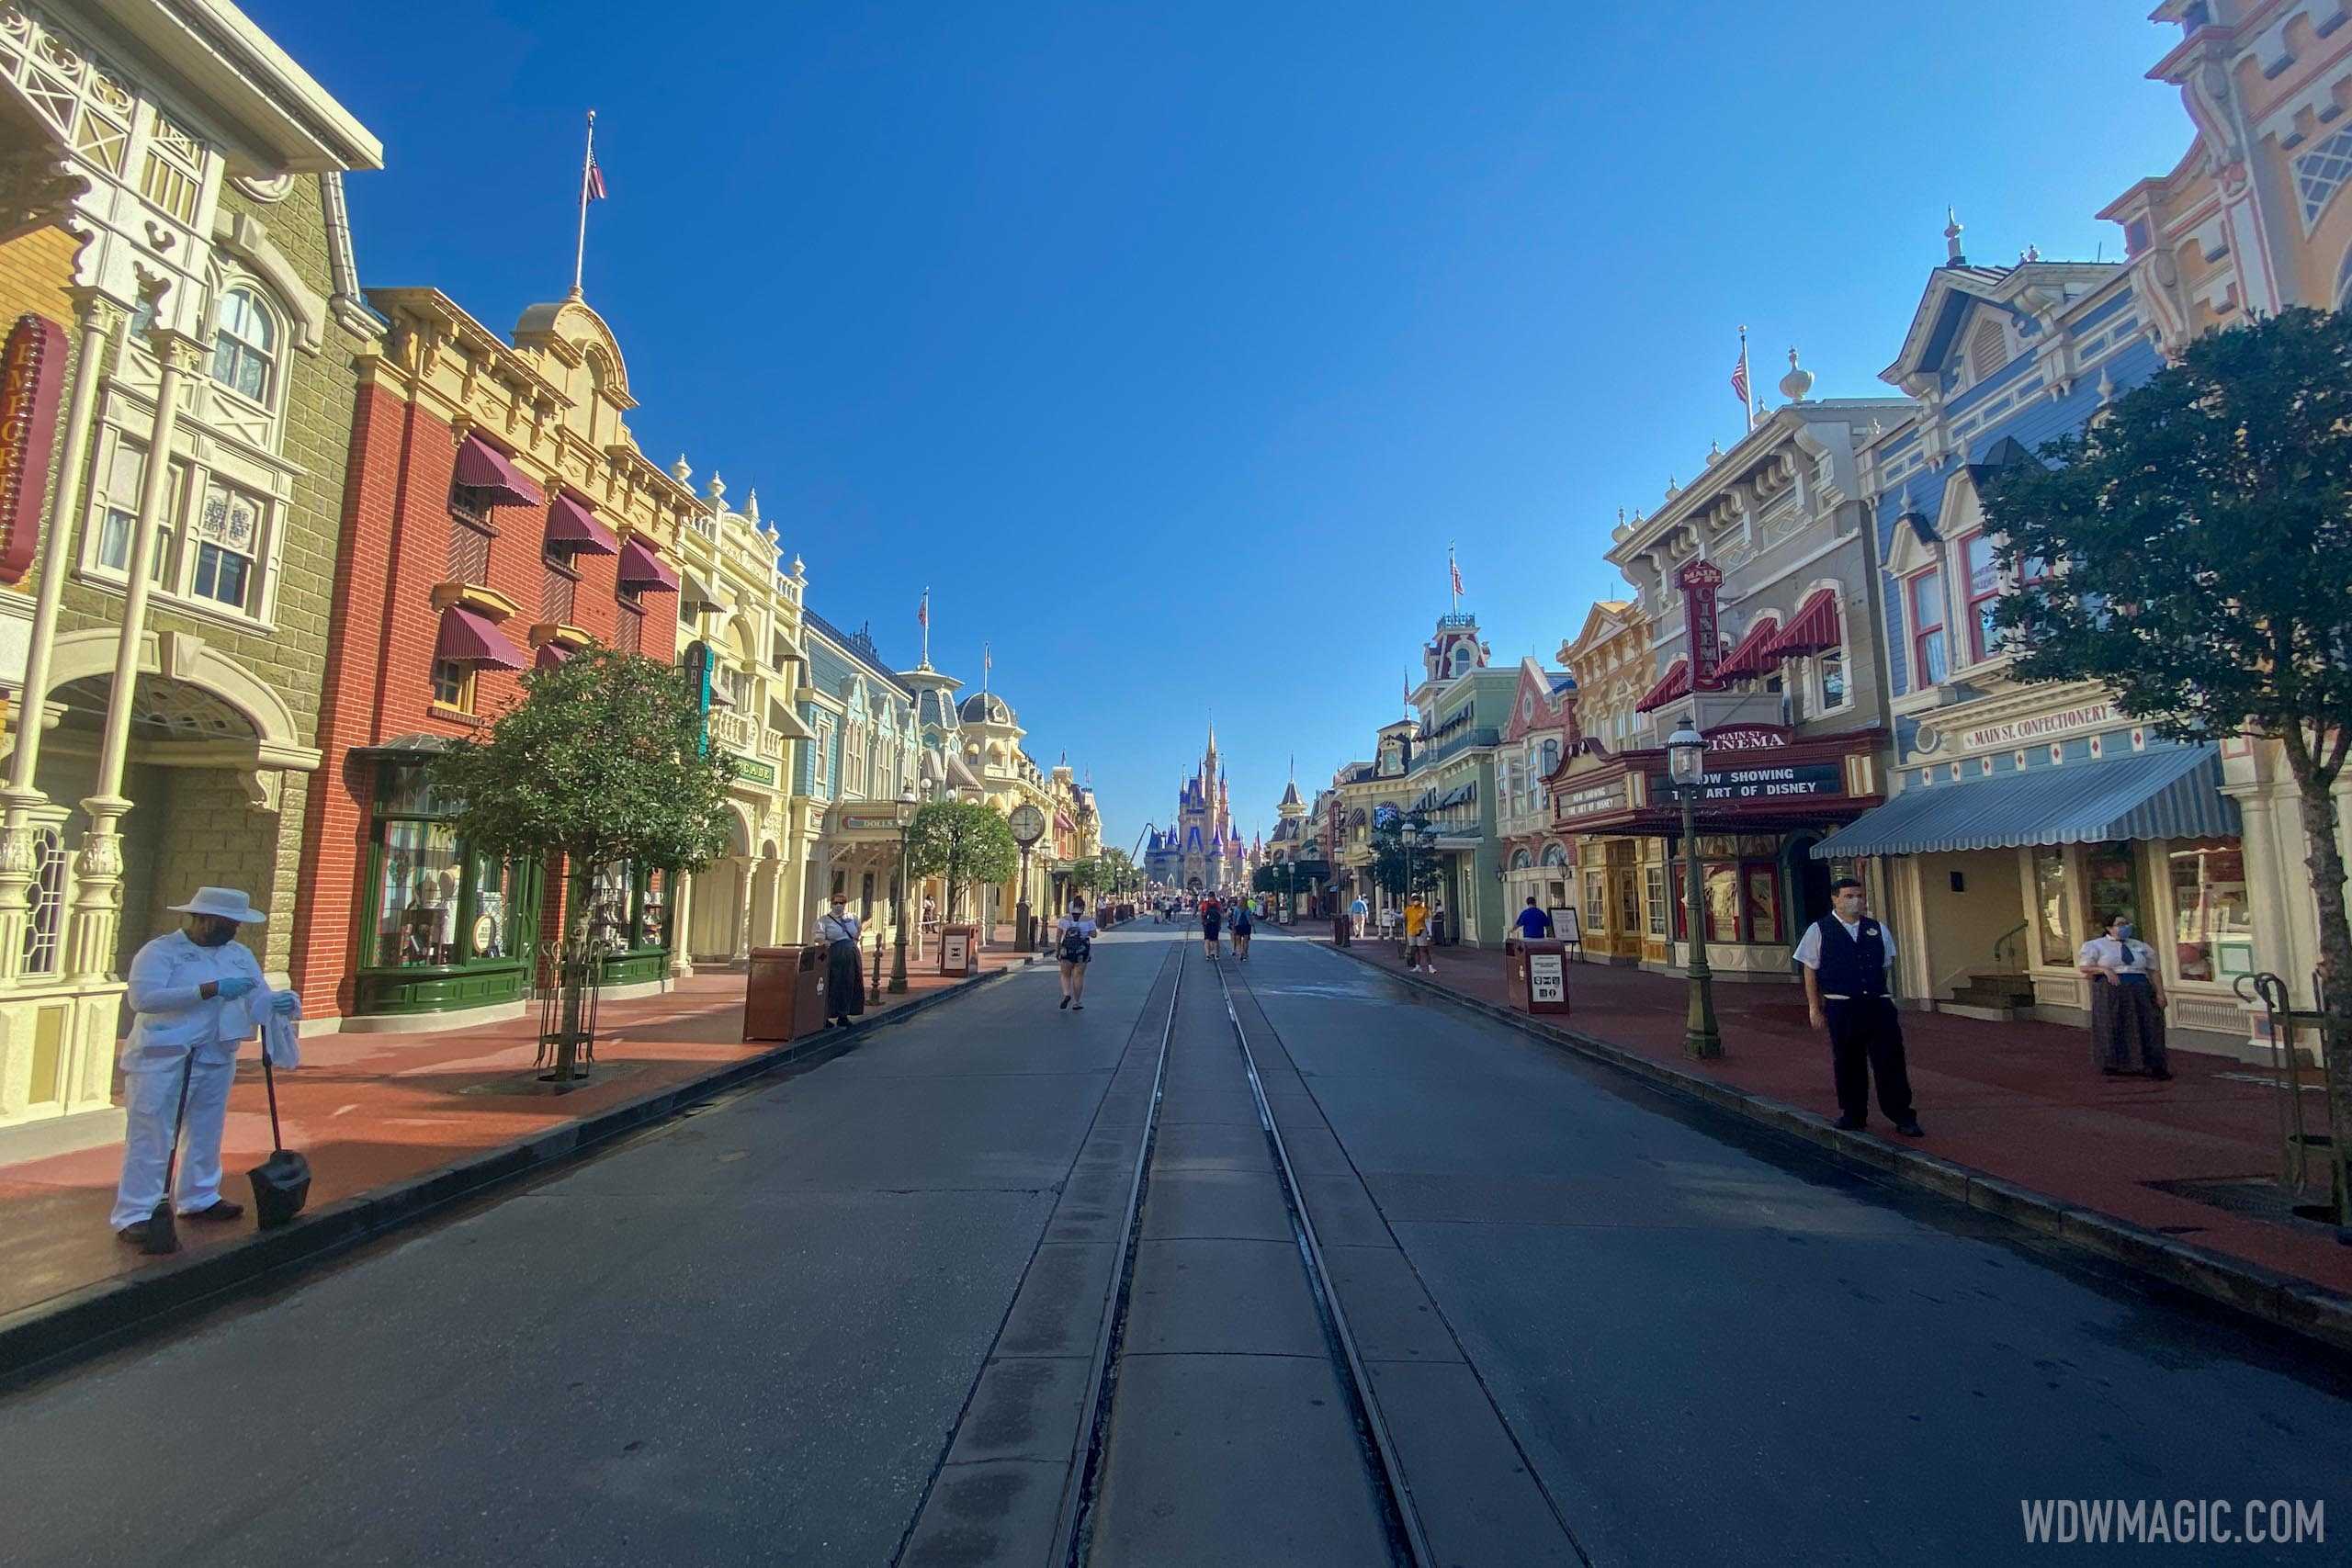 Magic Kingdom reopening from COVID-19 closure